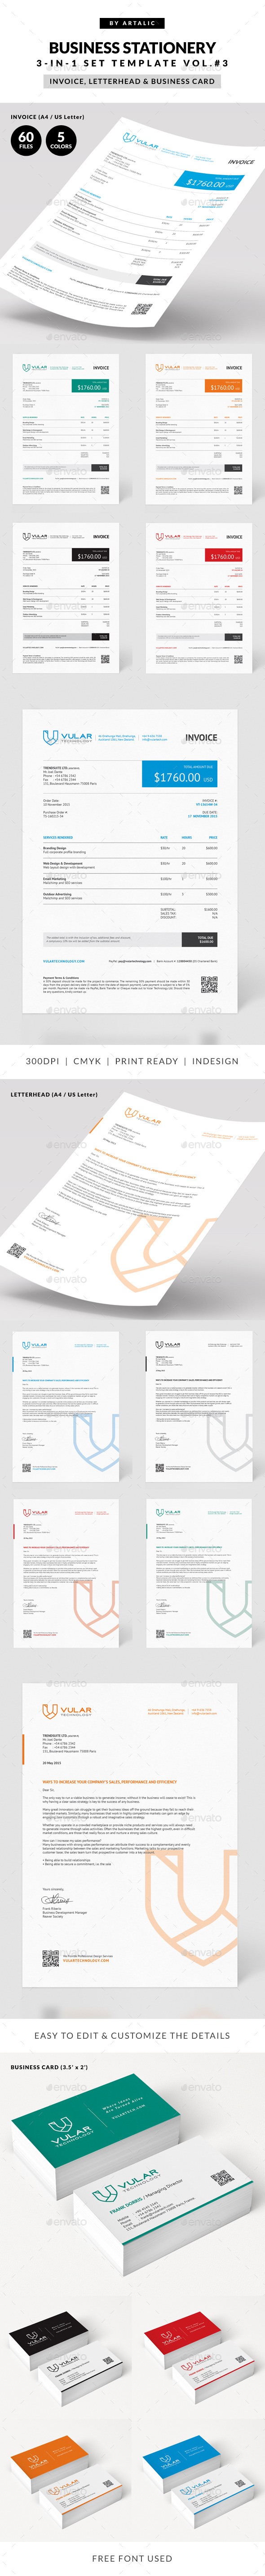 Invoice 3-in-1 Set - Proposals & Invoices Stationery